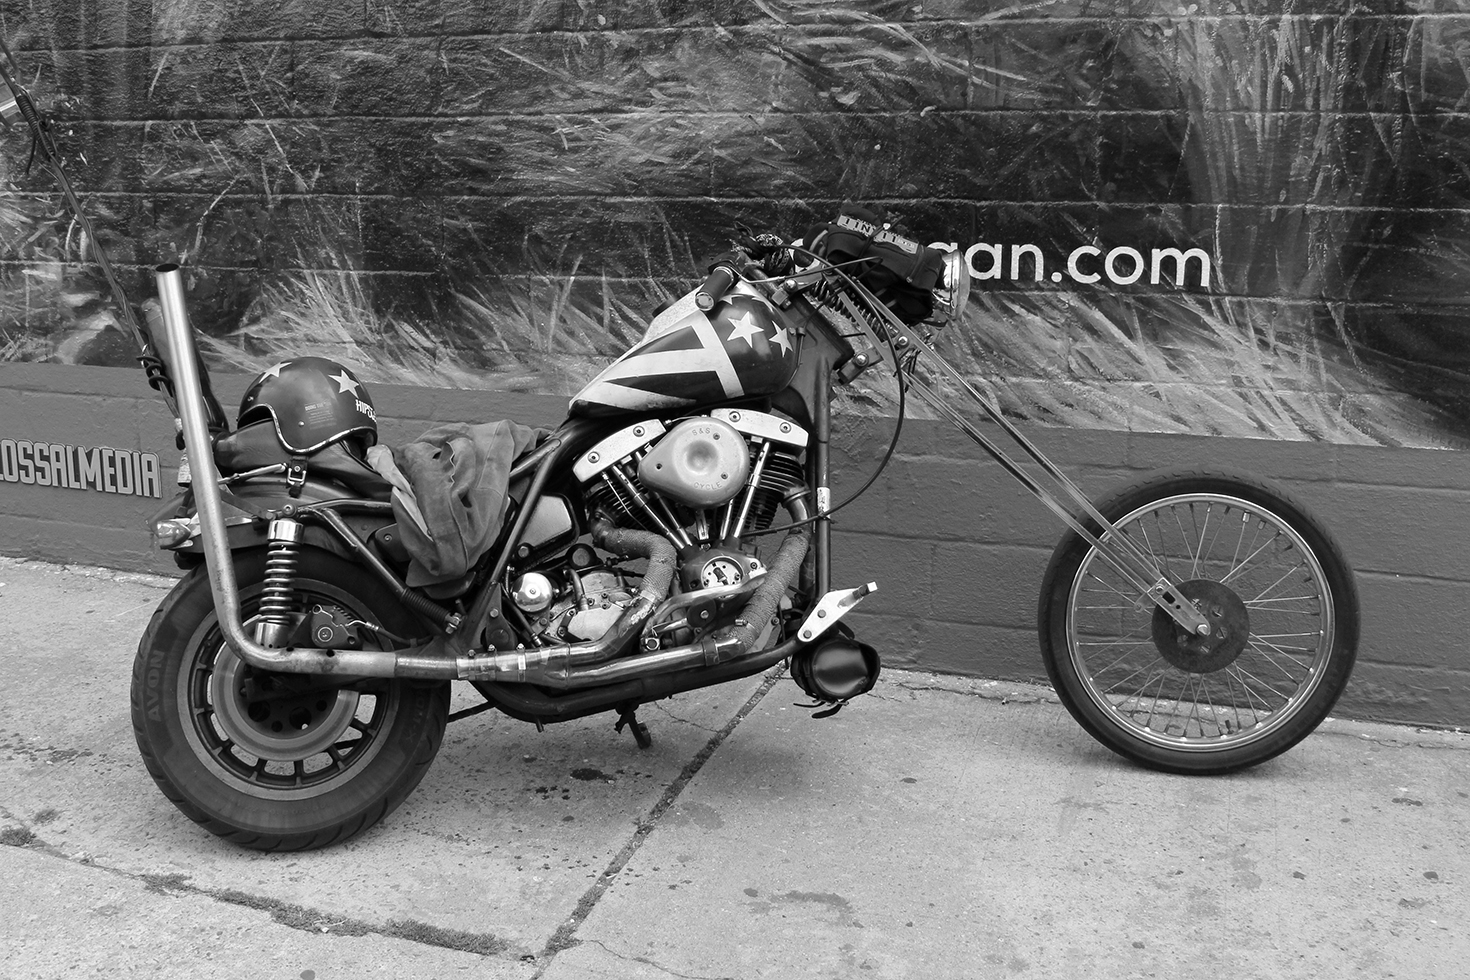 NYC Vintage Motorcycle Show | New York, New York